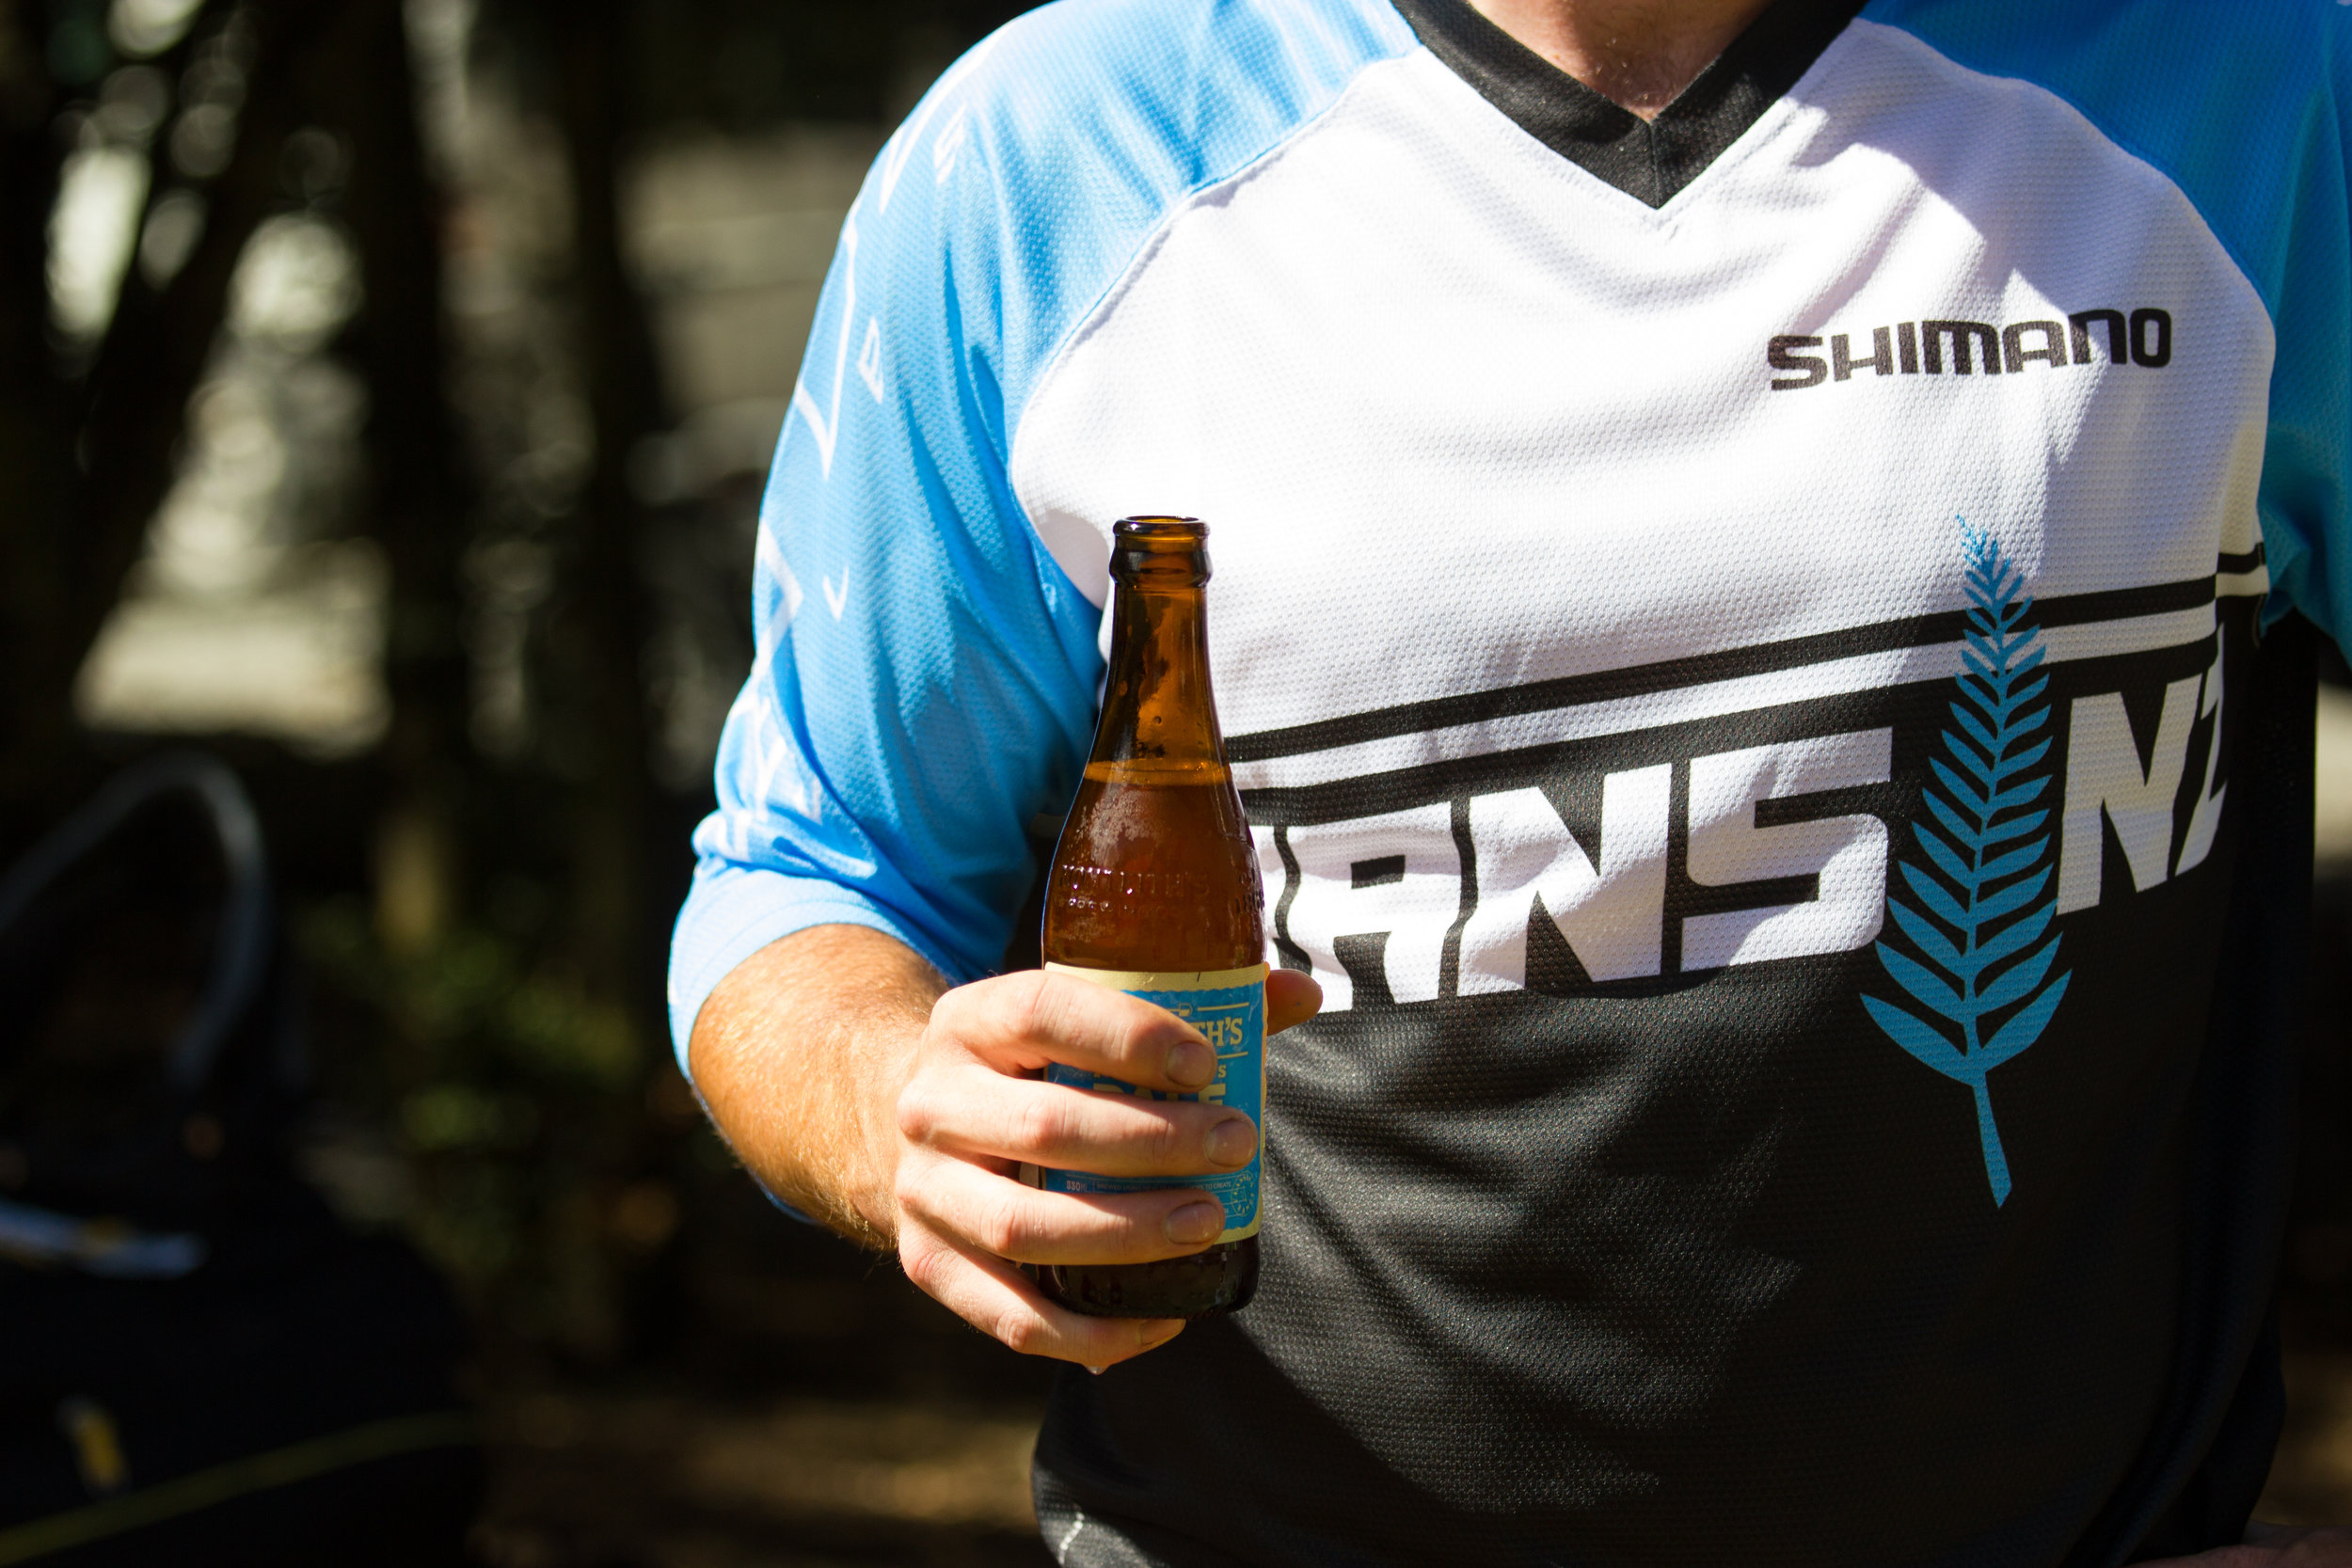 """Race crew jersey's so you know where to aim all those urgent questions """"Where's the beer?"""""""